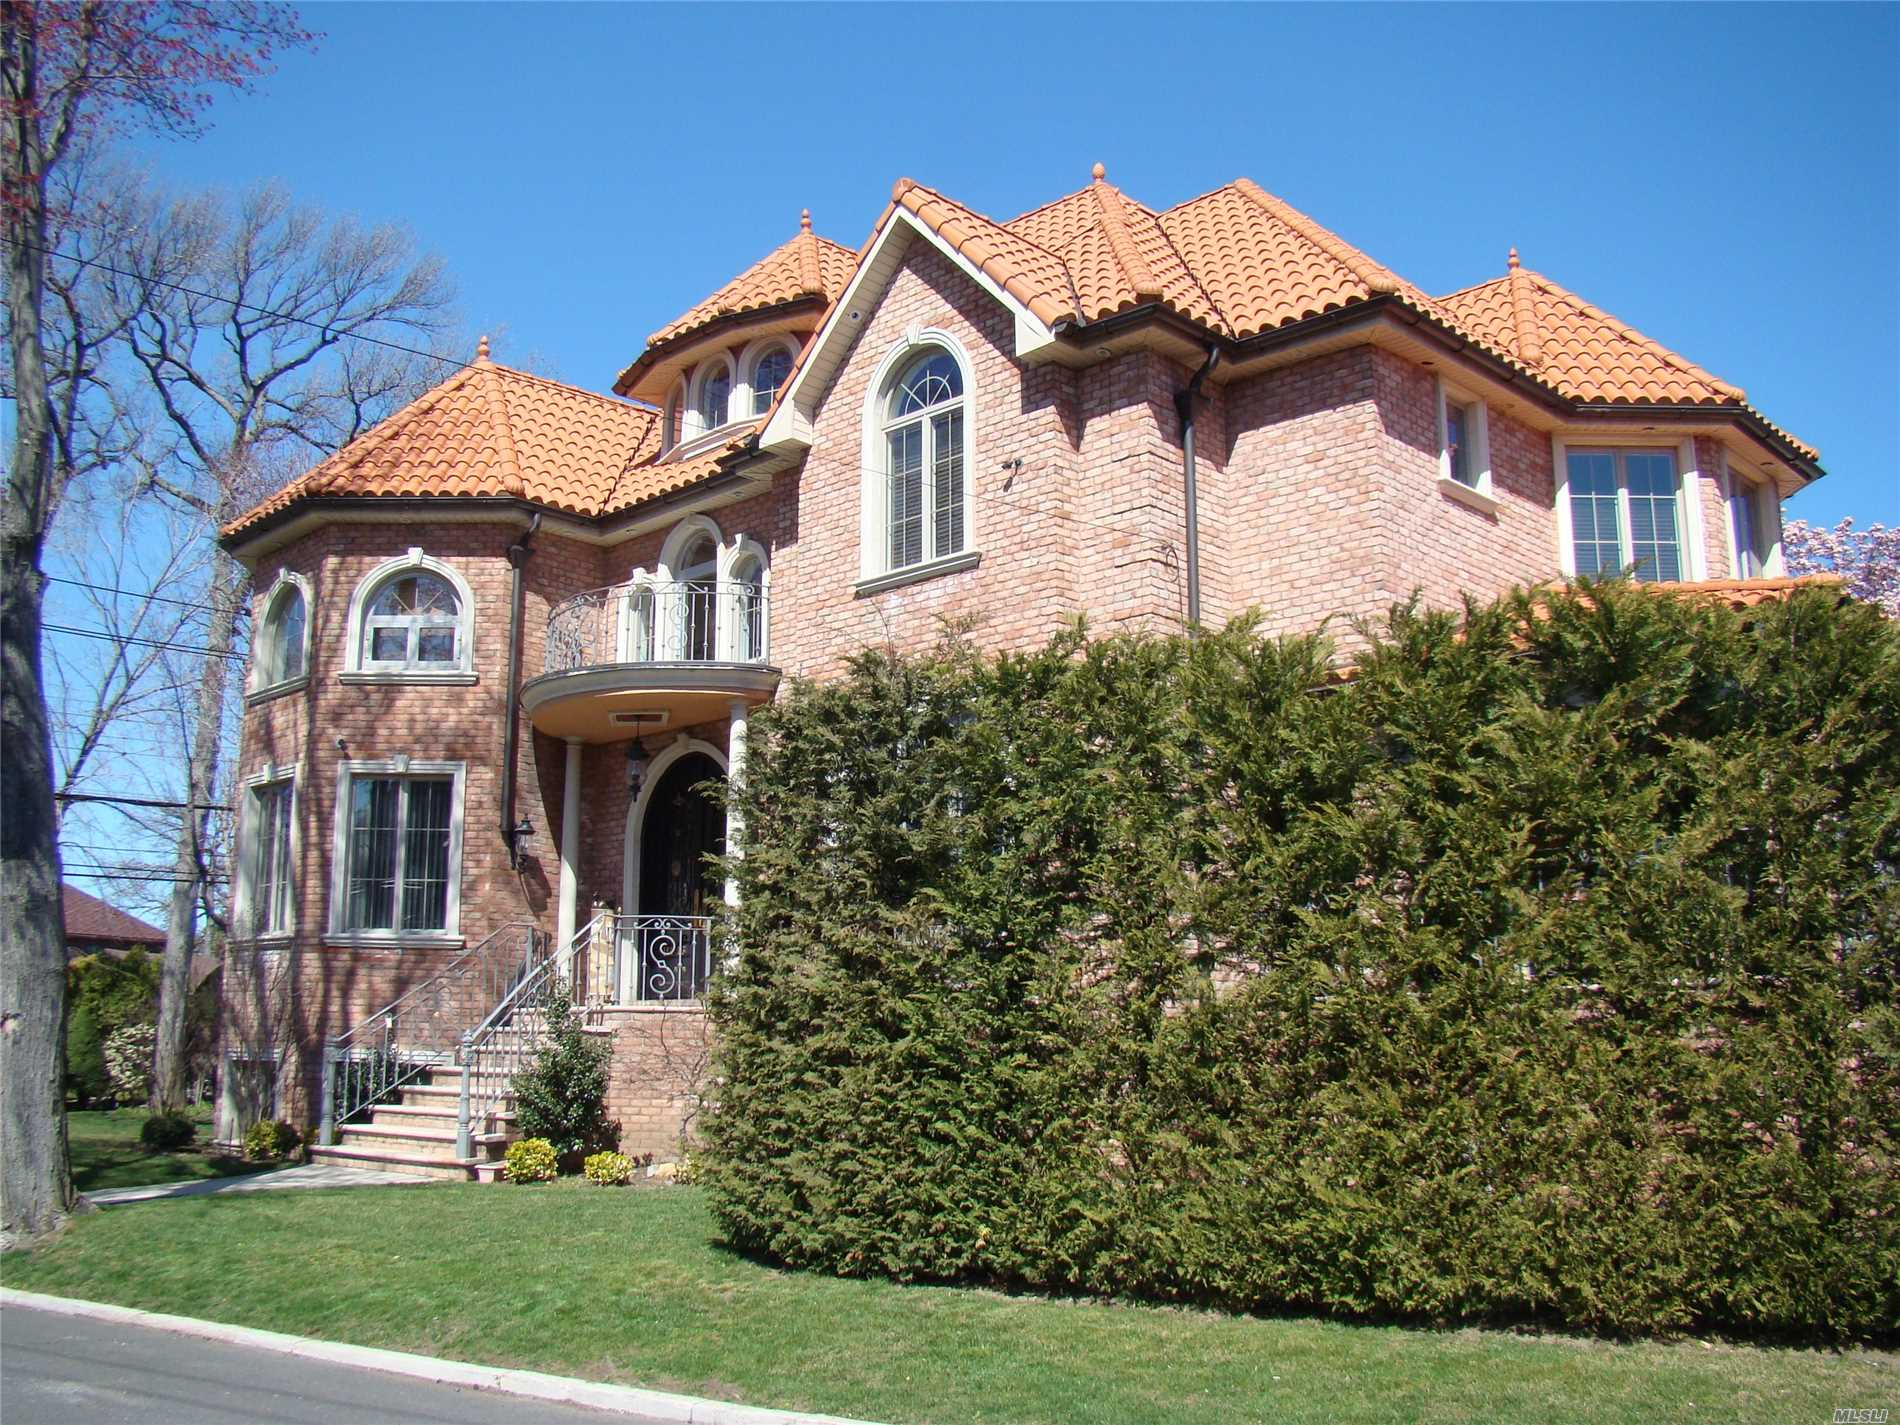 Young Brick One Family In A Desirable Area Whitestone/Beechhurst. Facing South, Corner Property, Custom Built With Top Of The Line Material. Gracious Double Height Entry Foyer, Open Floor Plan And Hardwood Floor Throughout. Vaulted Ceilings In A All 4 Oversized Bedrooms, With 4 Full Baths/ 2 Car Garage With Driveway. Must See